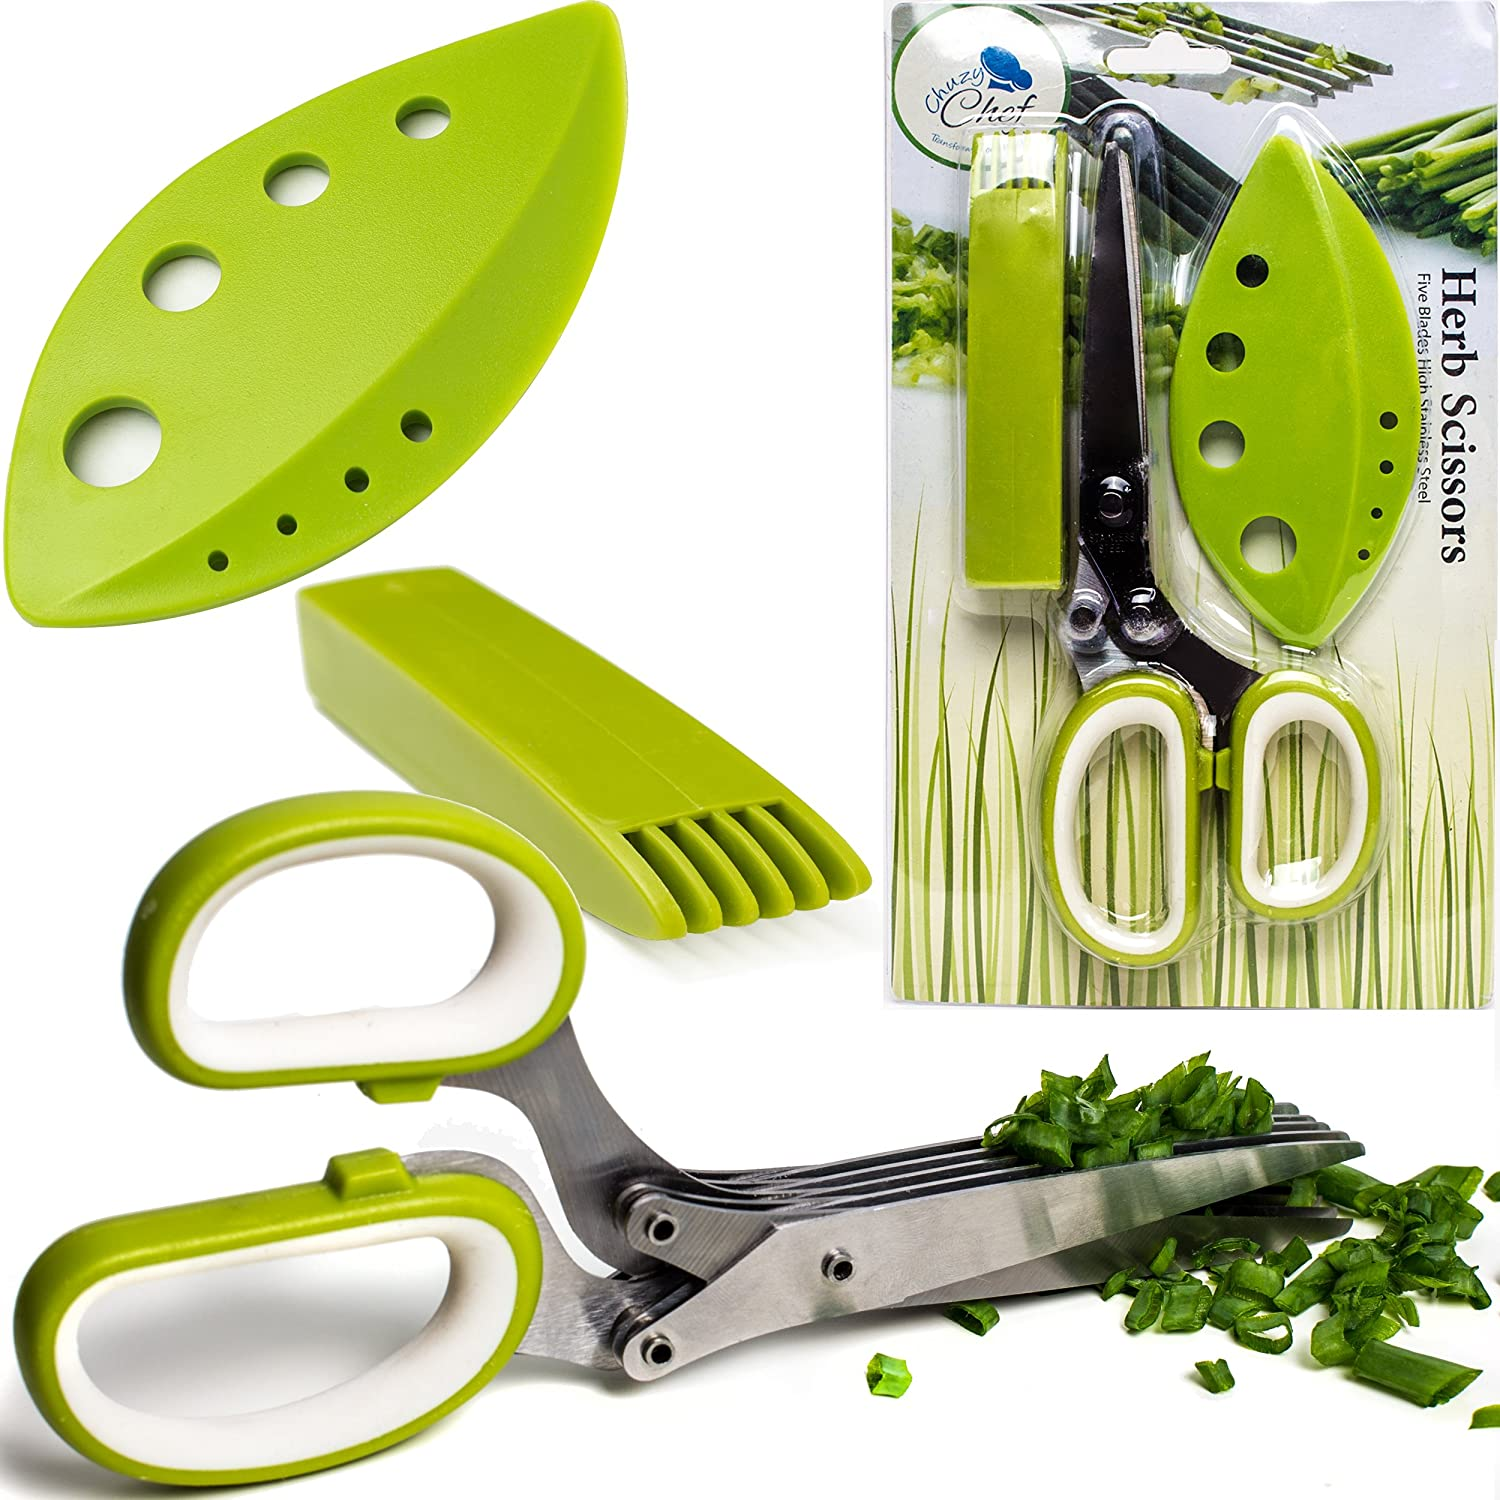 Chuzy Chef Herb Scissors Multipurpose Kitchen Shears Stainless Steel 5 Blade With Cleaning Brush Green SYNCHKG076620